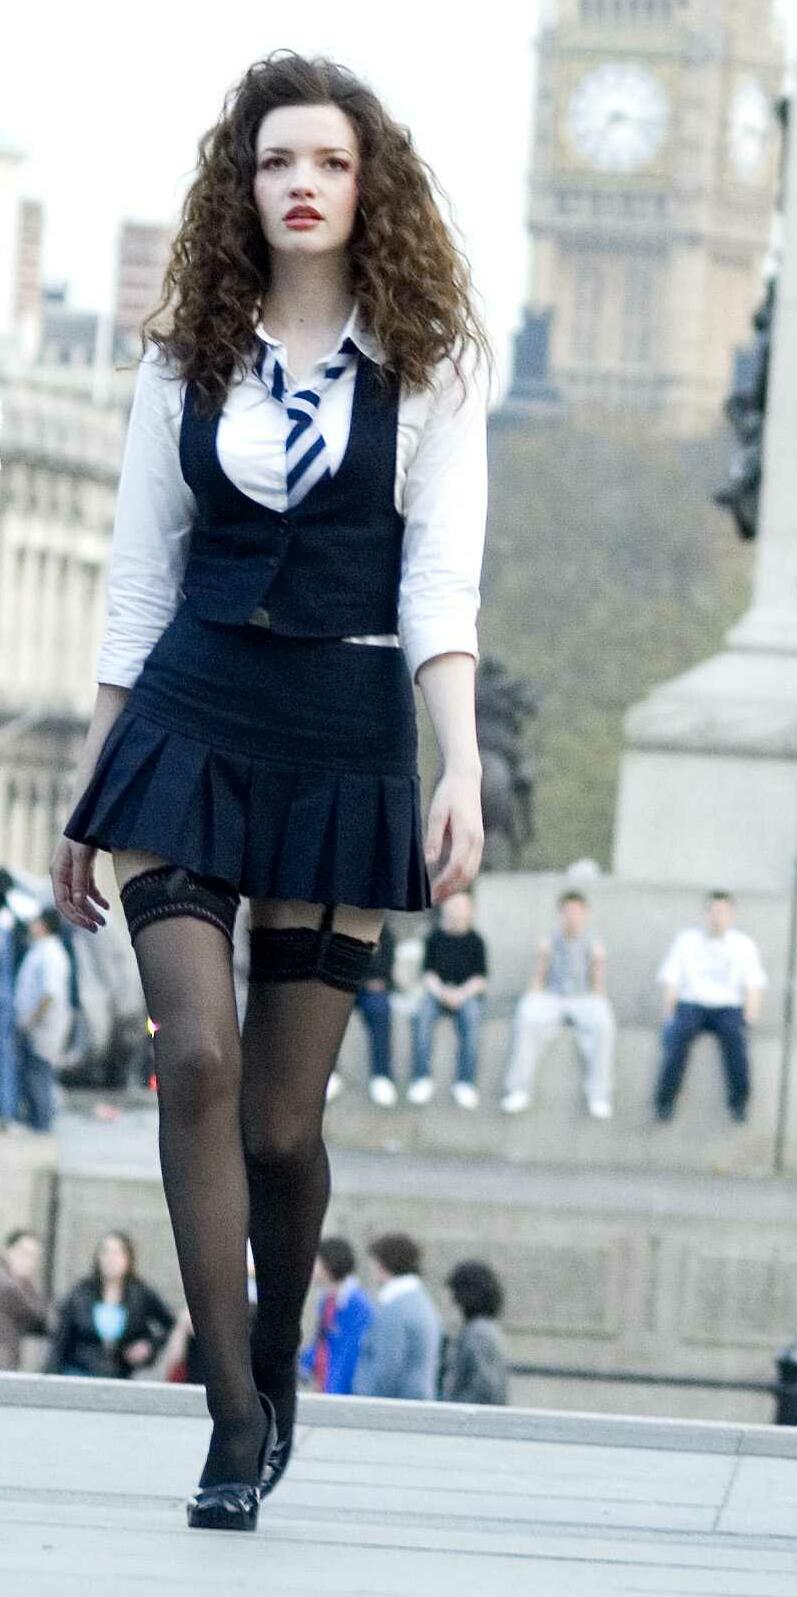 Talulah Riley - Annabelle Fritton from St Trinian's after her school make-over